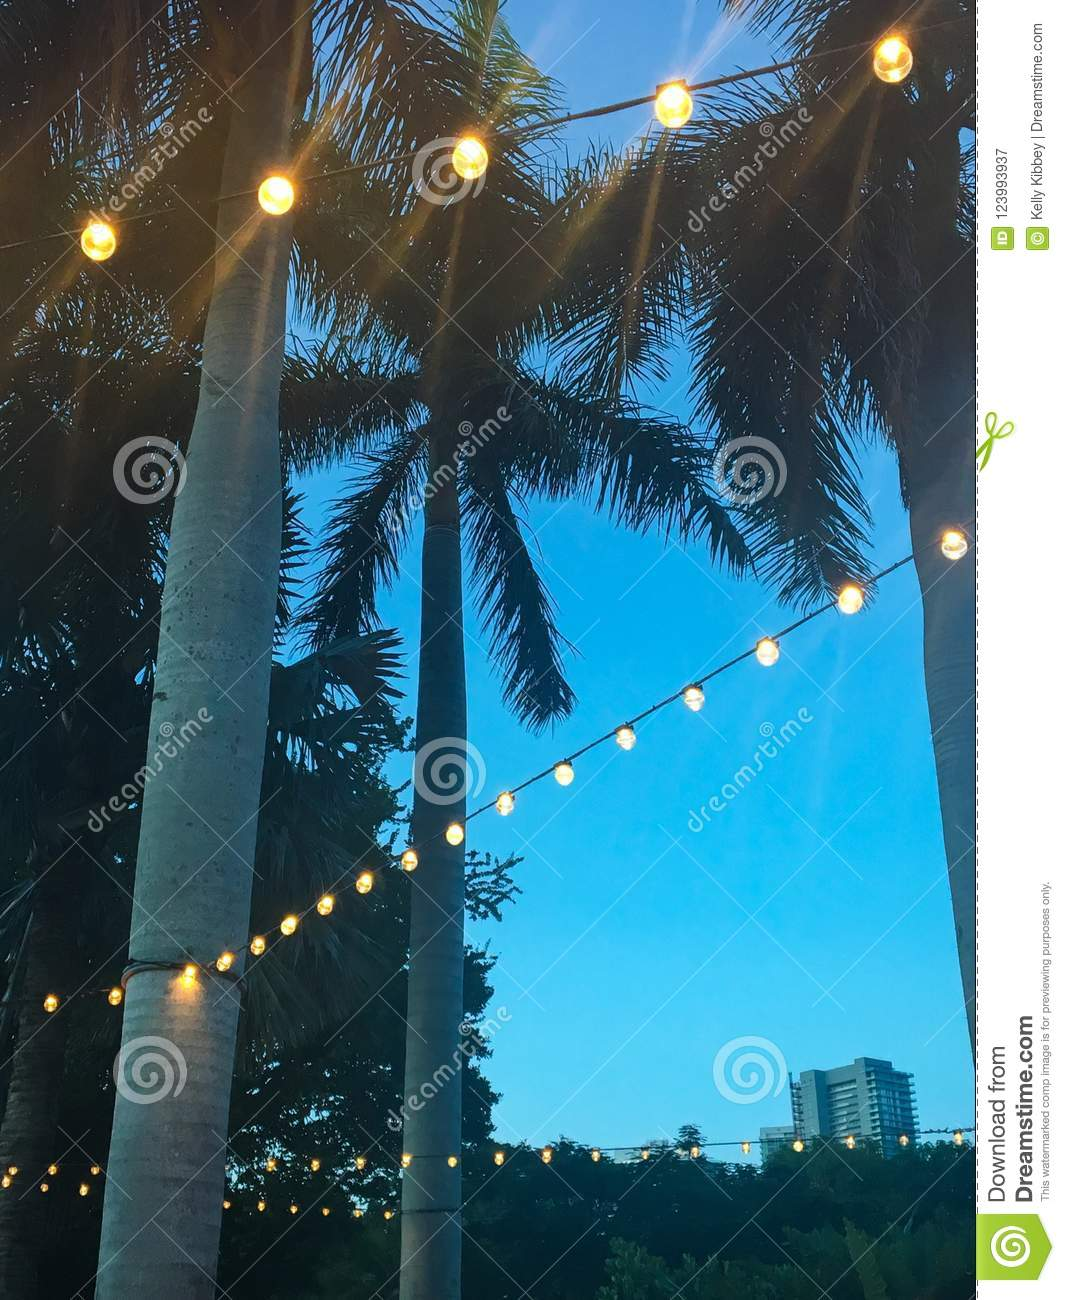 https www dreamstime com looking up palm trees decorated string lights outdoor patio south florida close up outdoor lights image123993937